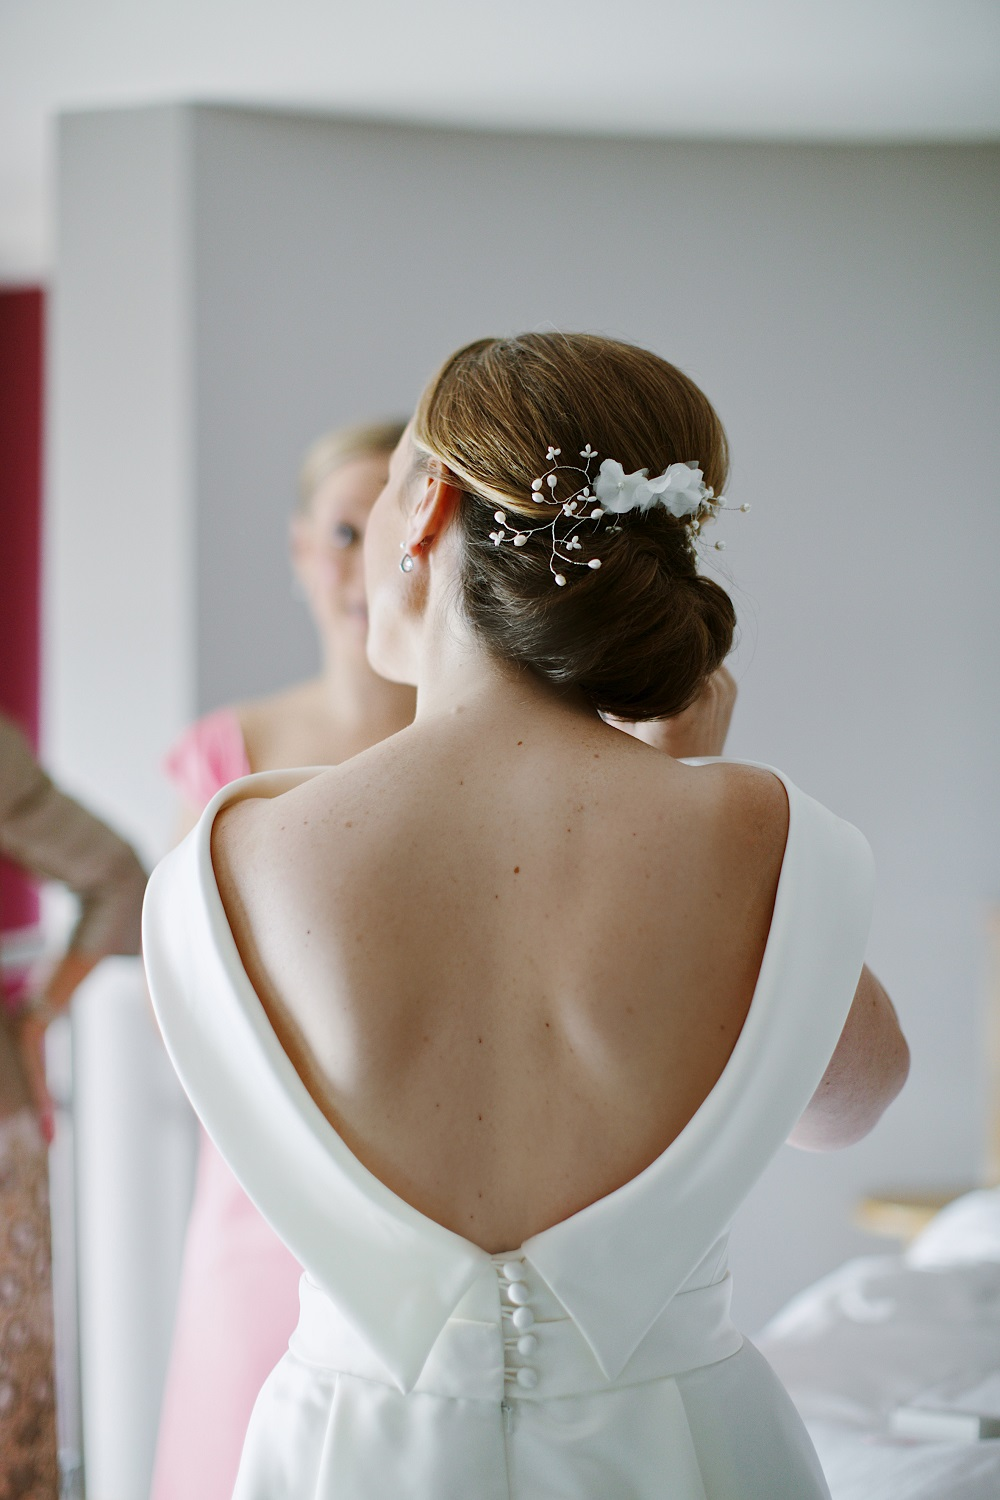 Joanna wearing a bespoke freshwater pearl wedding hair comb